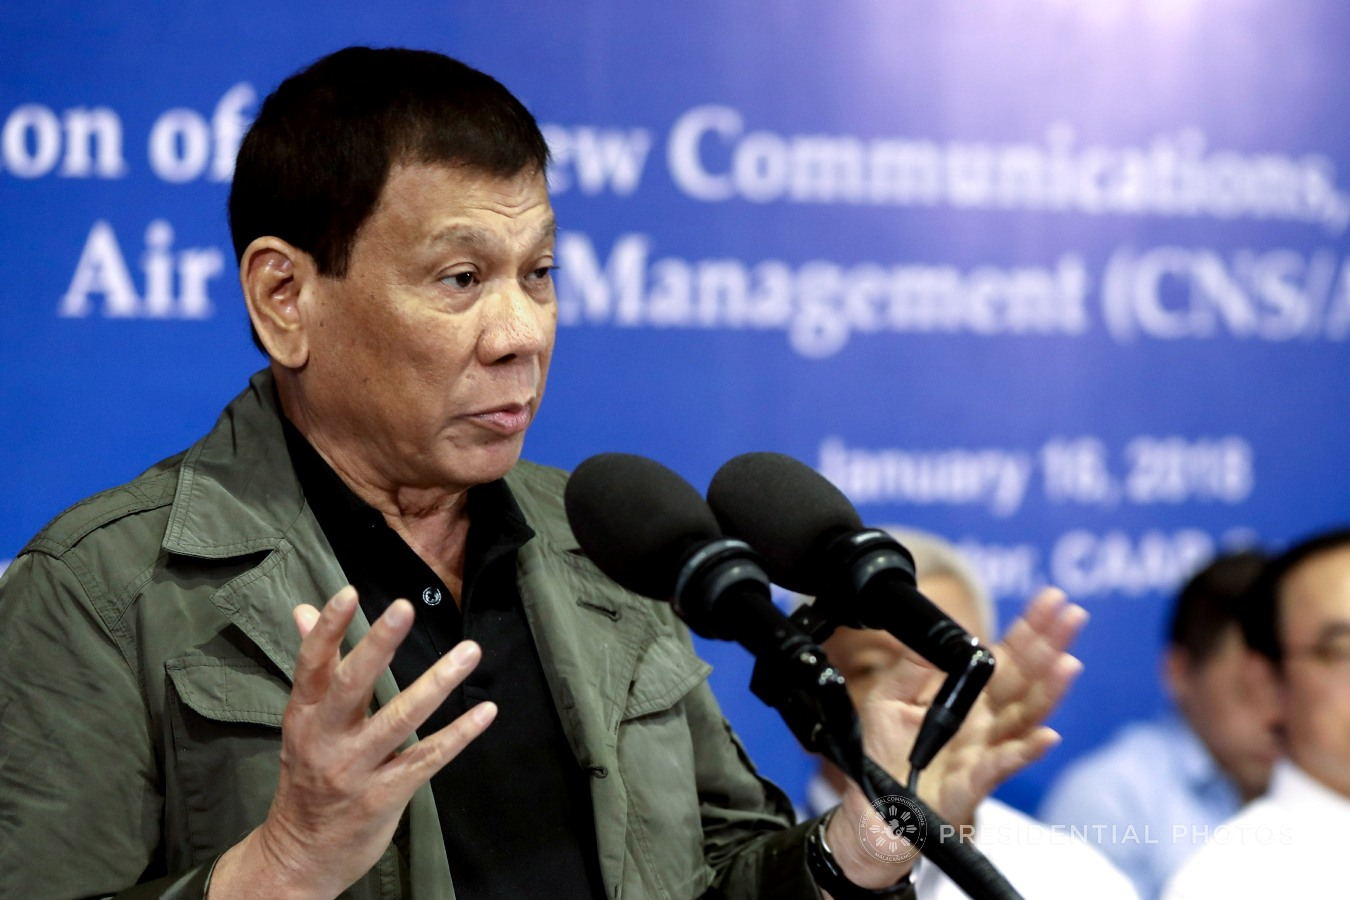 President Rodrigo Roa Duterte, in his speech during the inauguration of the new Communications, Navigation, Surveillance / Air Traffic Management (CNS/ATM) Systems Development Project at the Philippine Air Traffic Management Center (PATMC) in Pasay City on January 16, 2018, announces that he will conduct a review on the various public works projects that have remained unfinished citing that he may terminate the contractors and find new ones who will get the job done. SIMEON CELI JR./PRESIDENTIAL PHOTO